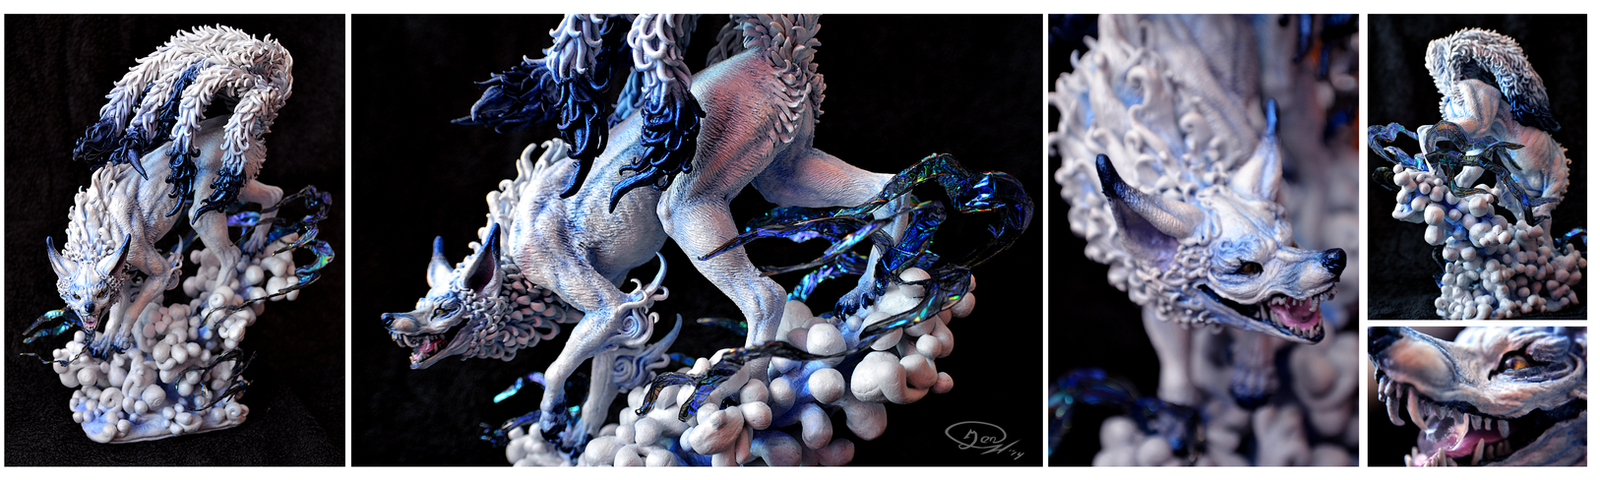 Ooak Beast of white and blue by mangakasan